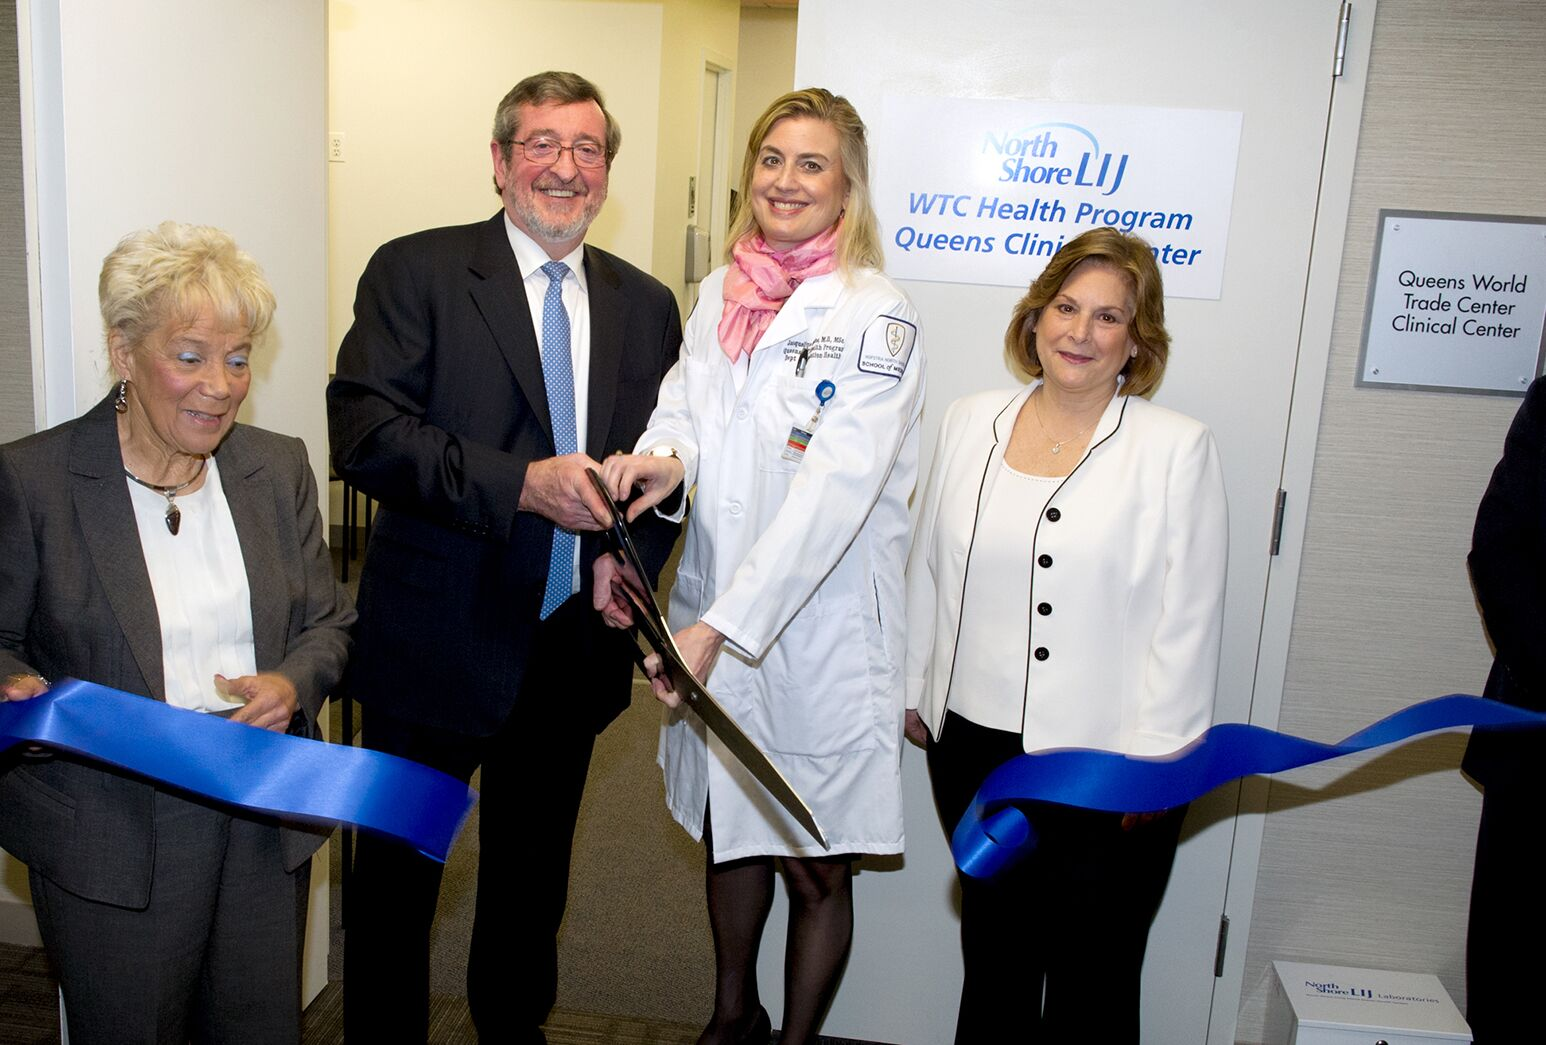 Michael Dowling and Dr. Jacqueline Moline at the Northwell Health WTC Clinic in Queens.